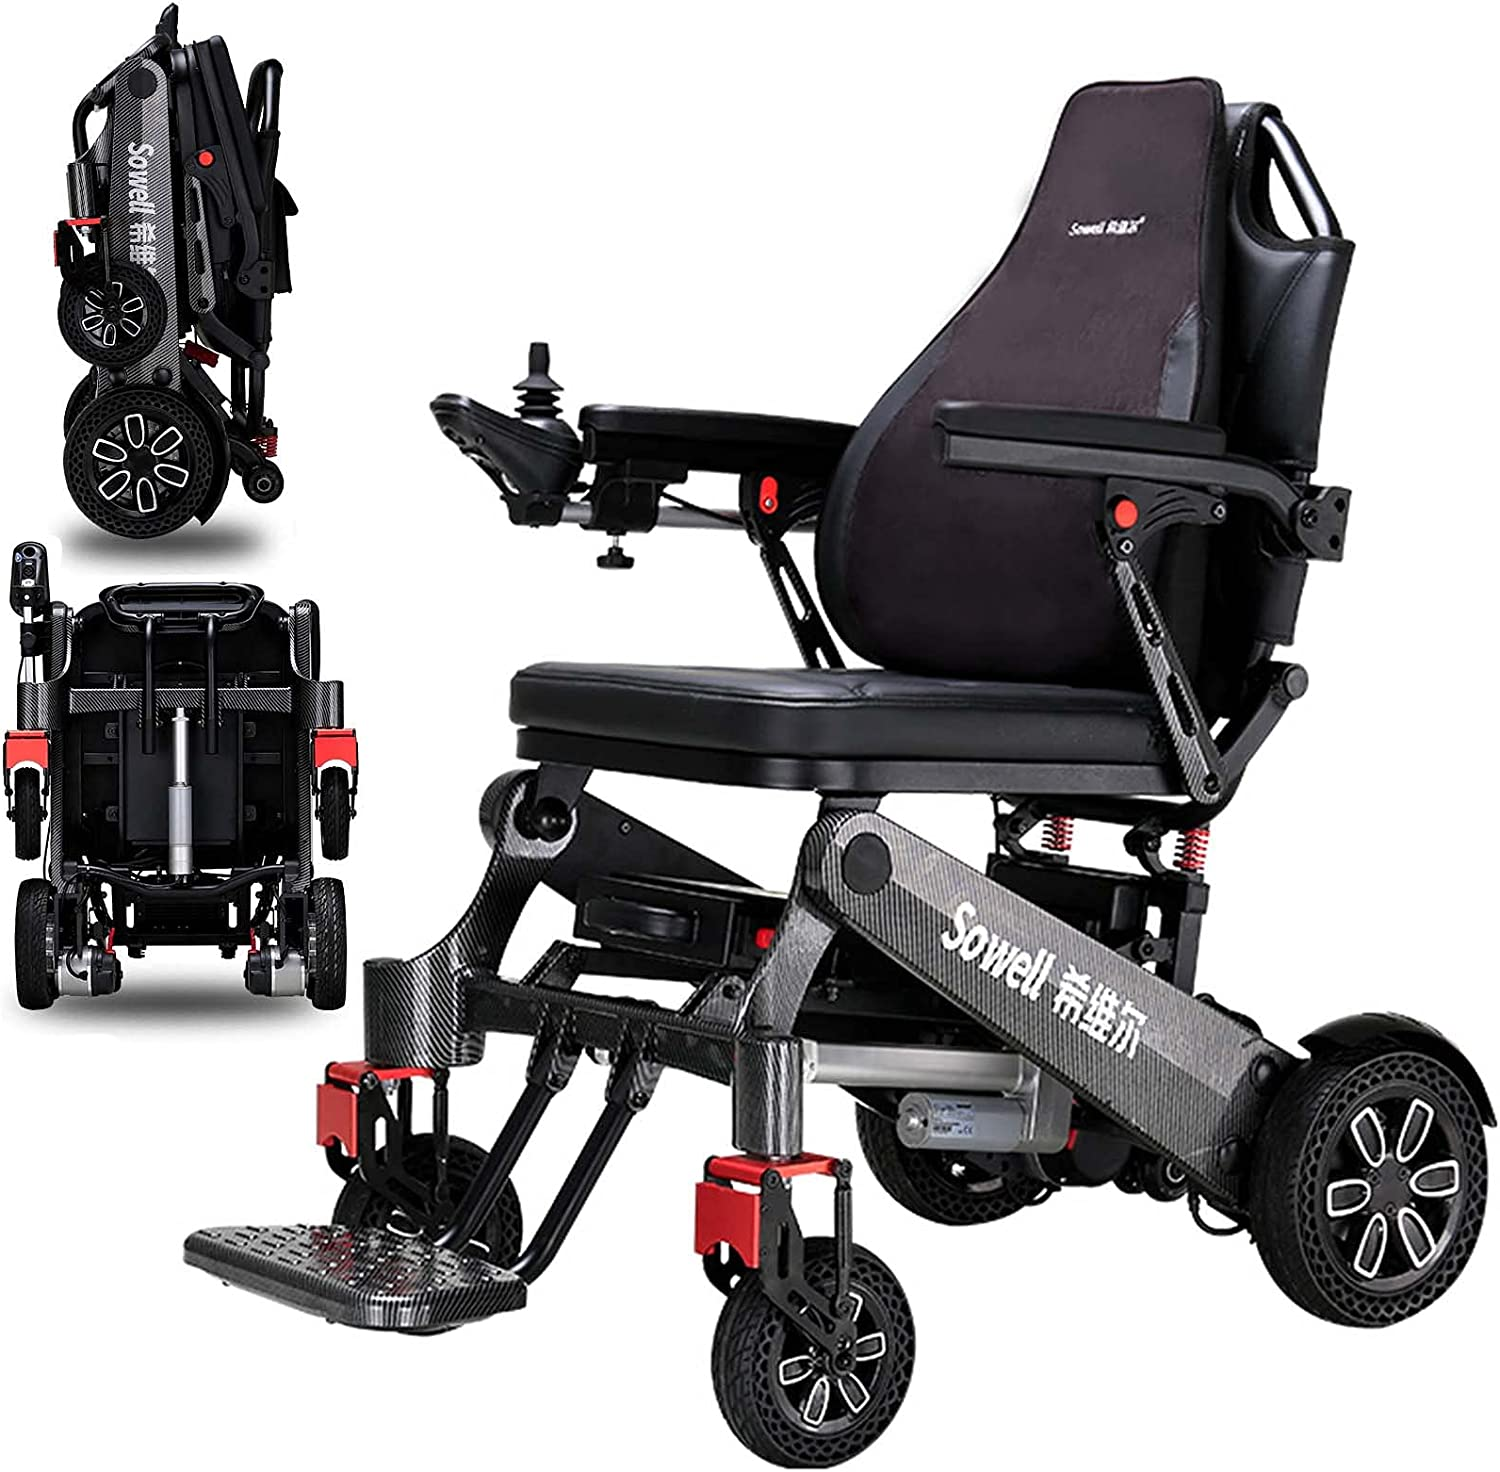 Max 59% OFF Los Angeles Mall PAYRFV Lightweight Electric Power Wheelchair Foldable